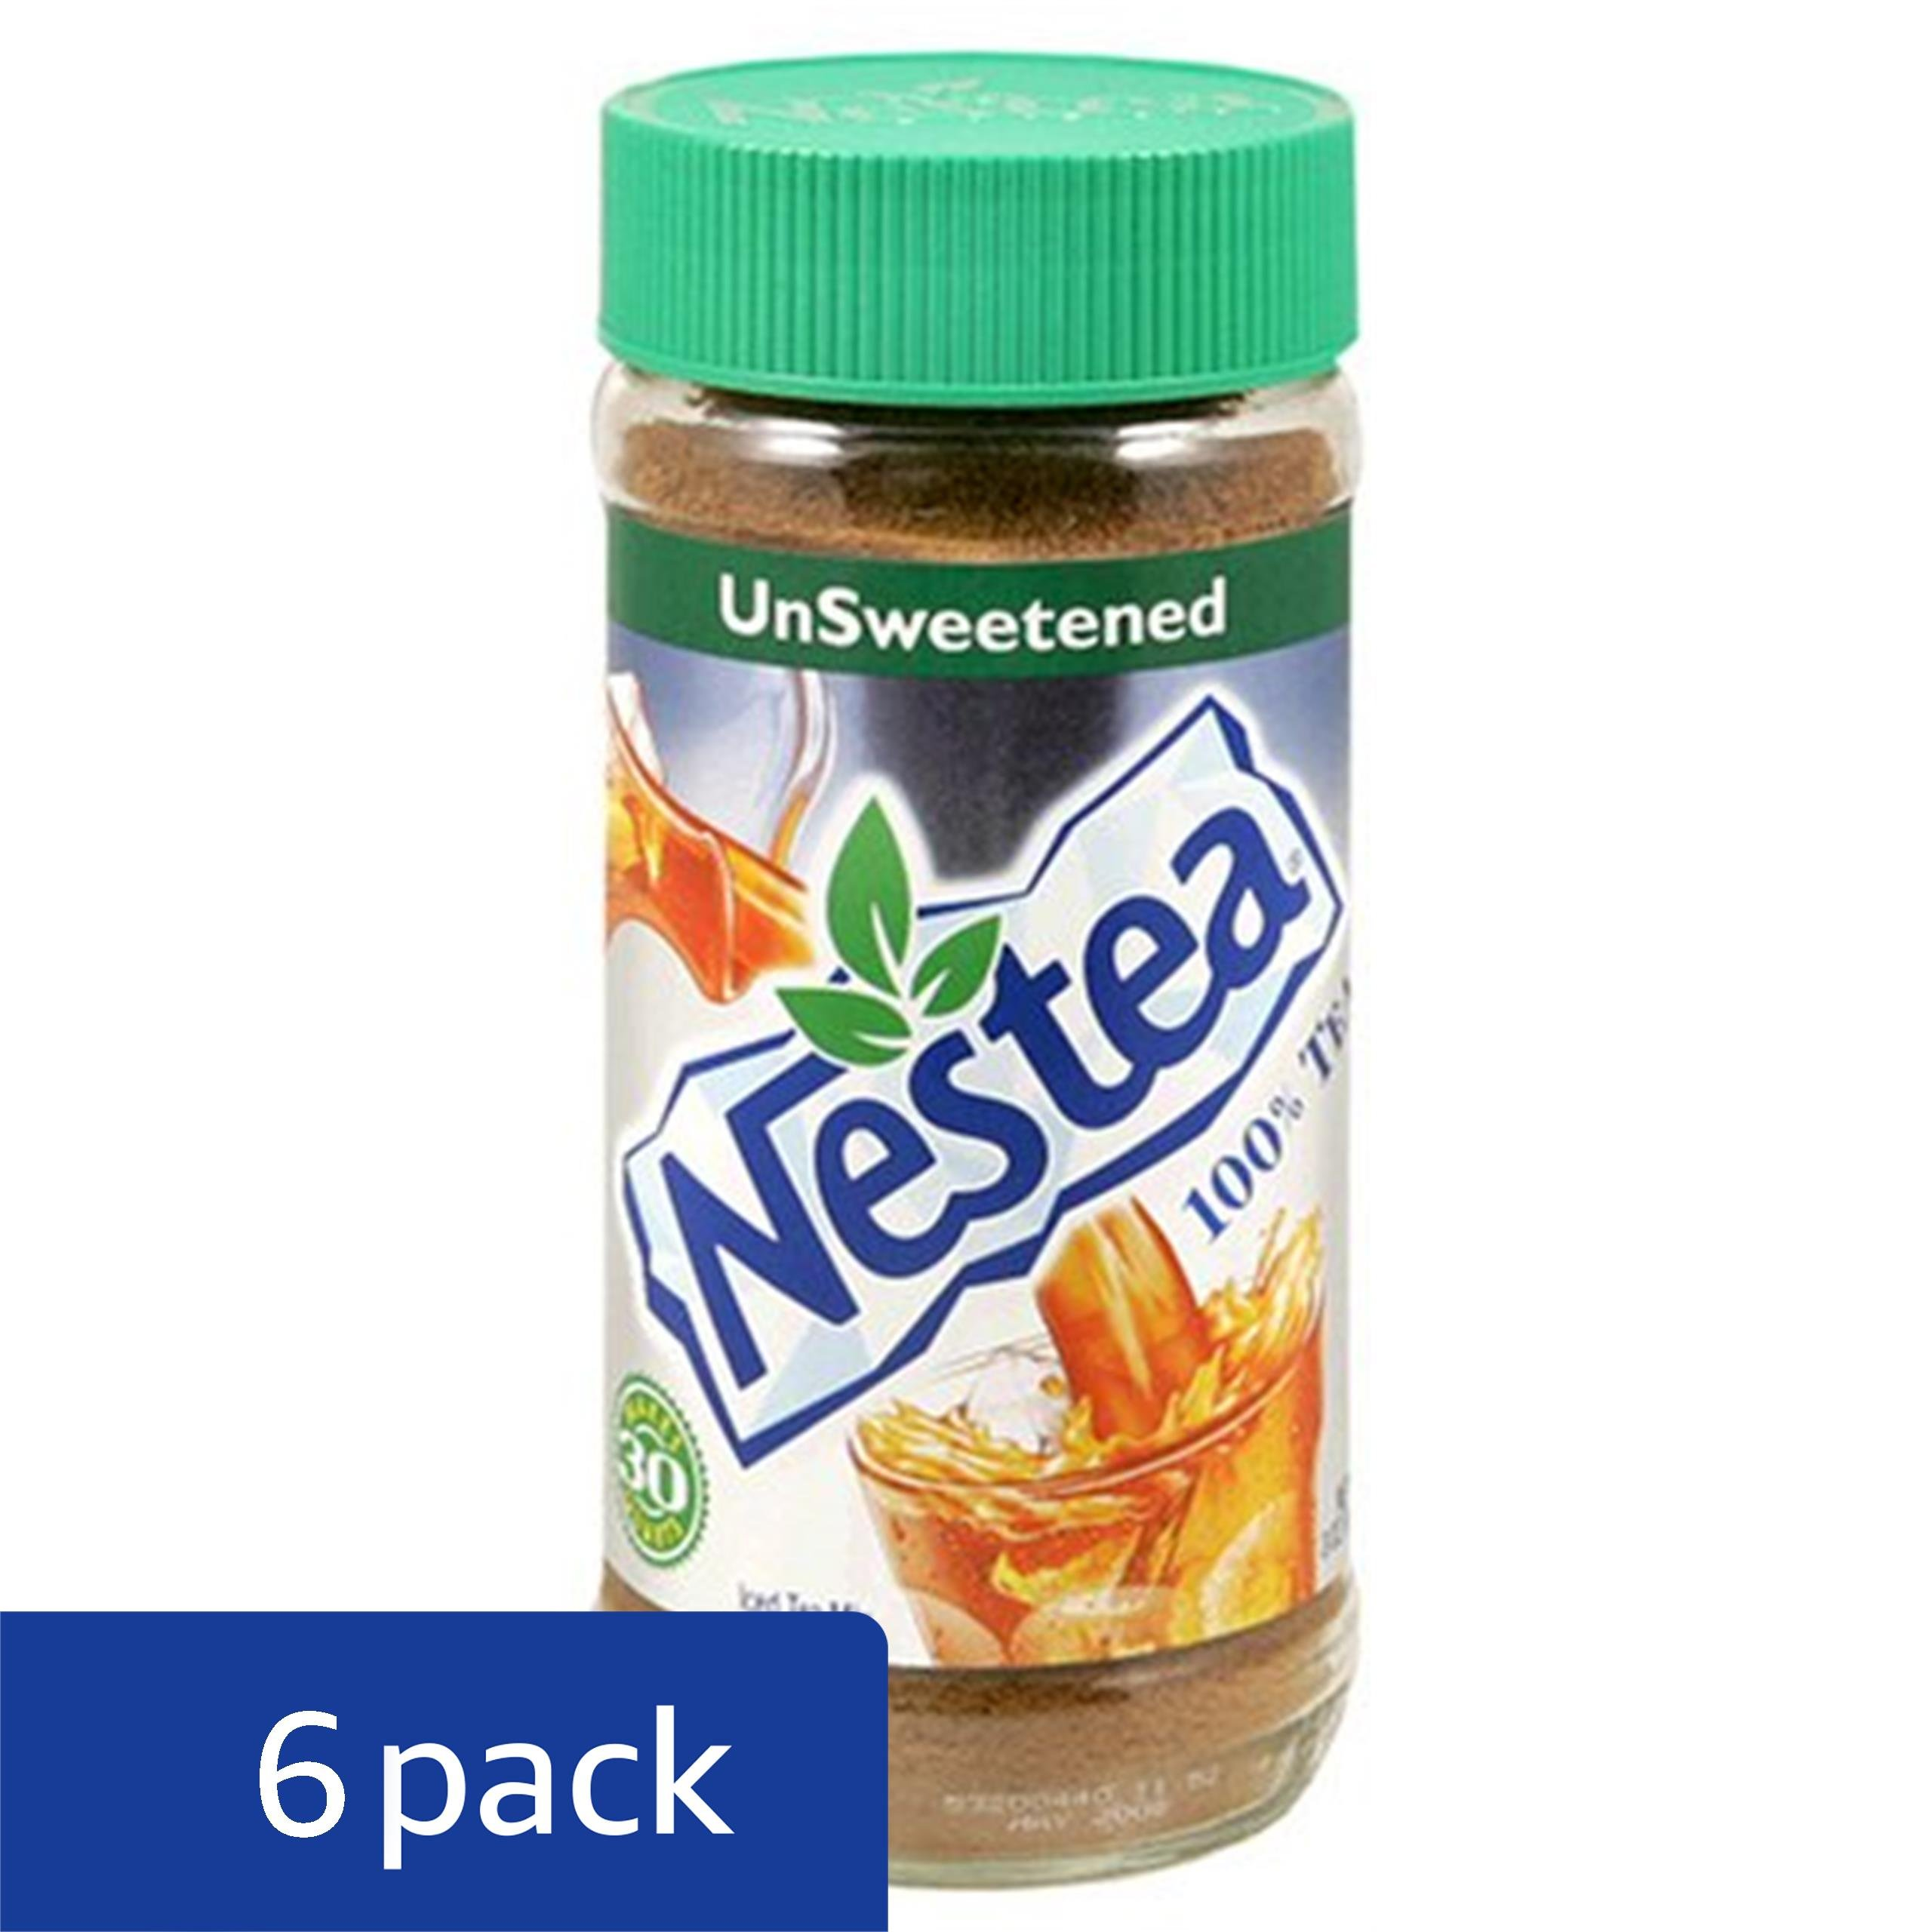 Nestea 100% Instant Tea, 3-Ounce Containers (Pack of 6) by Nestea